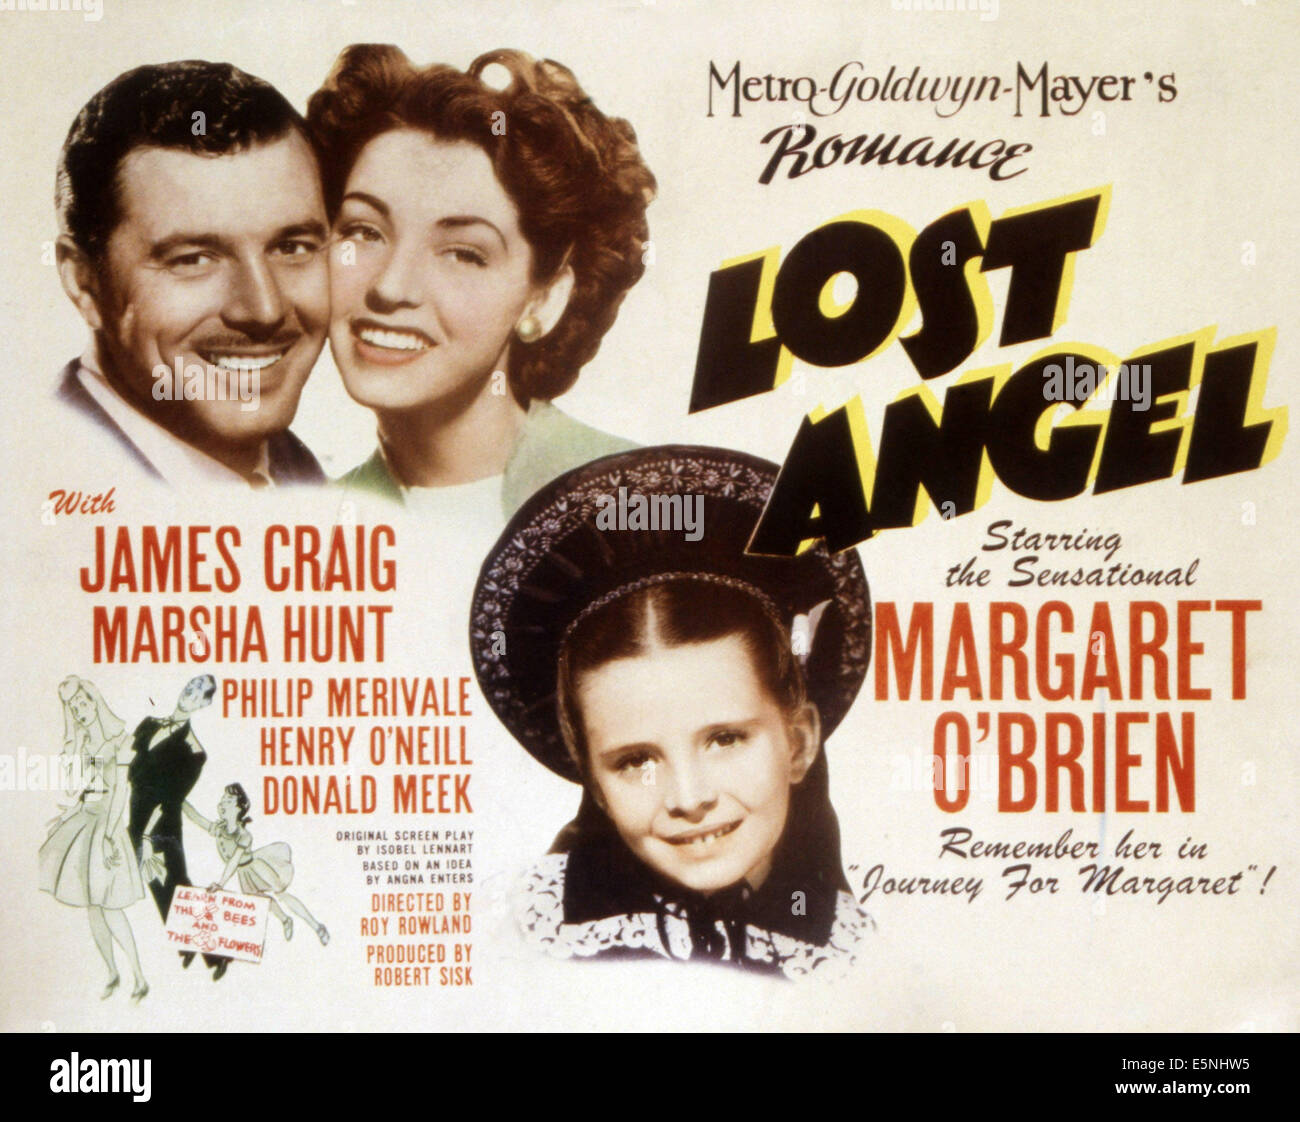 LOST ANGEL, James Craig, Marsha Hunt, Margaret O'Brien, 1943 - Stock Image